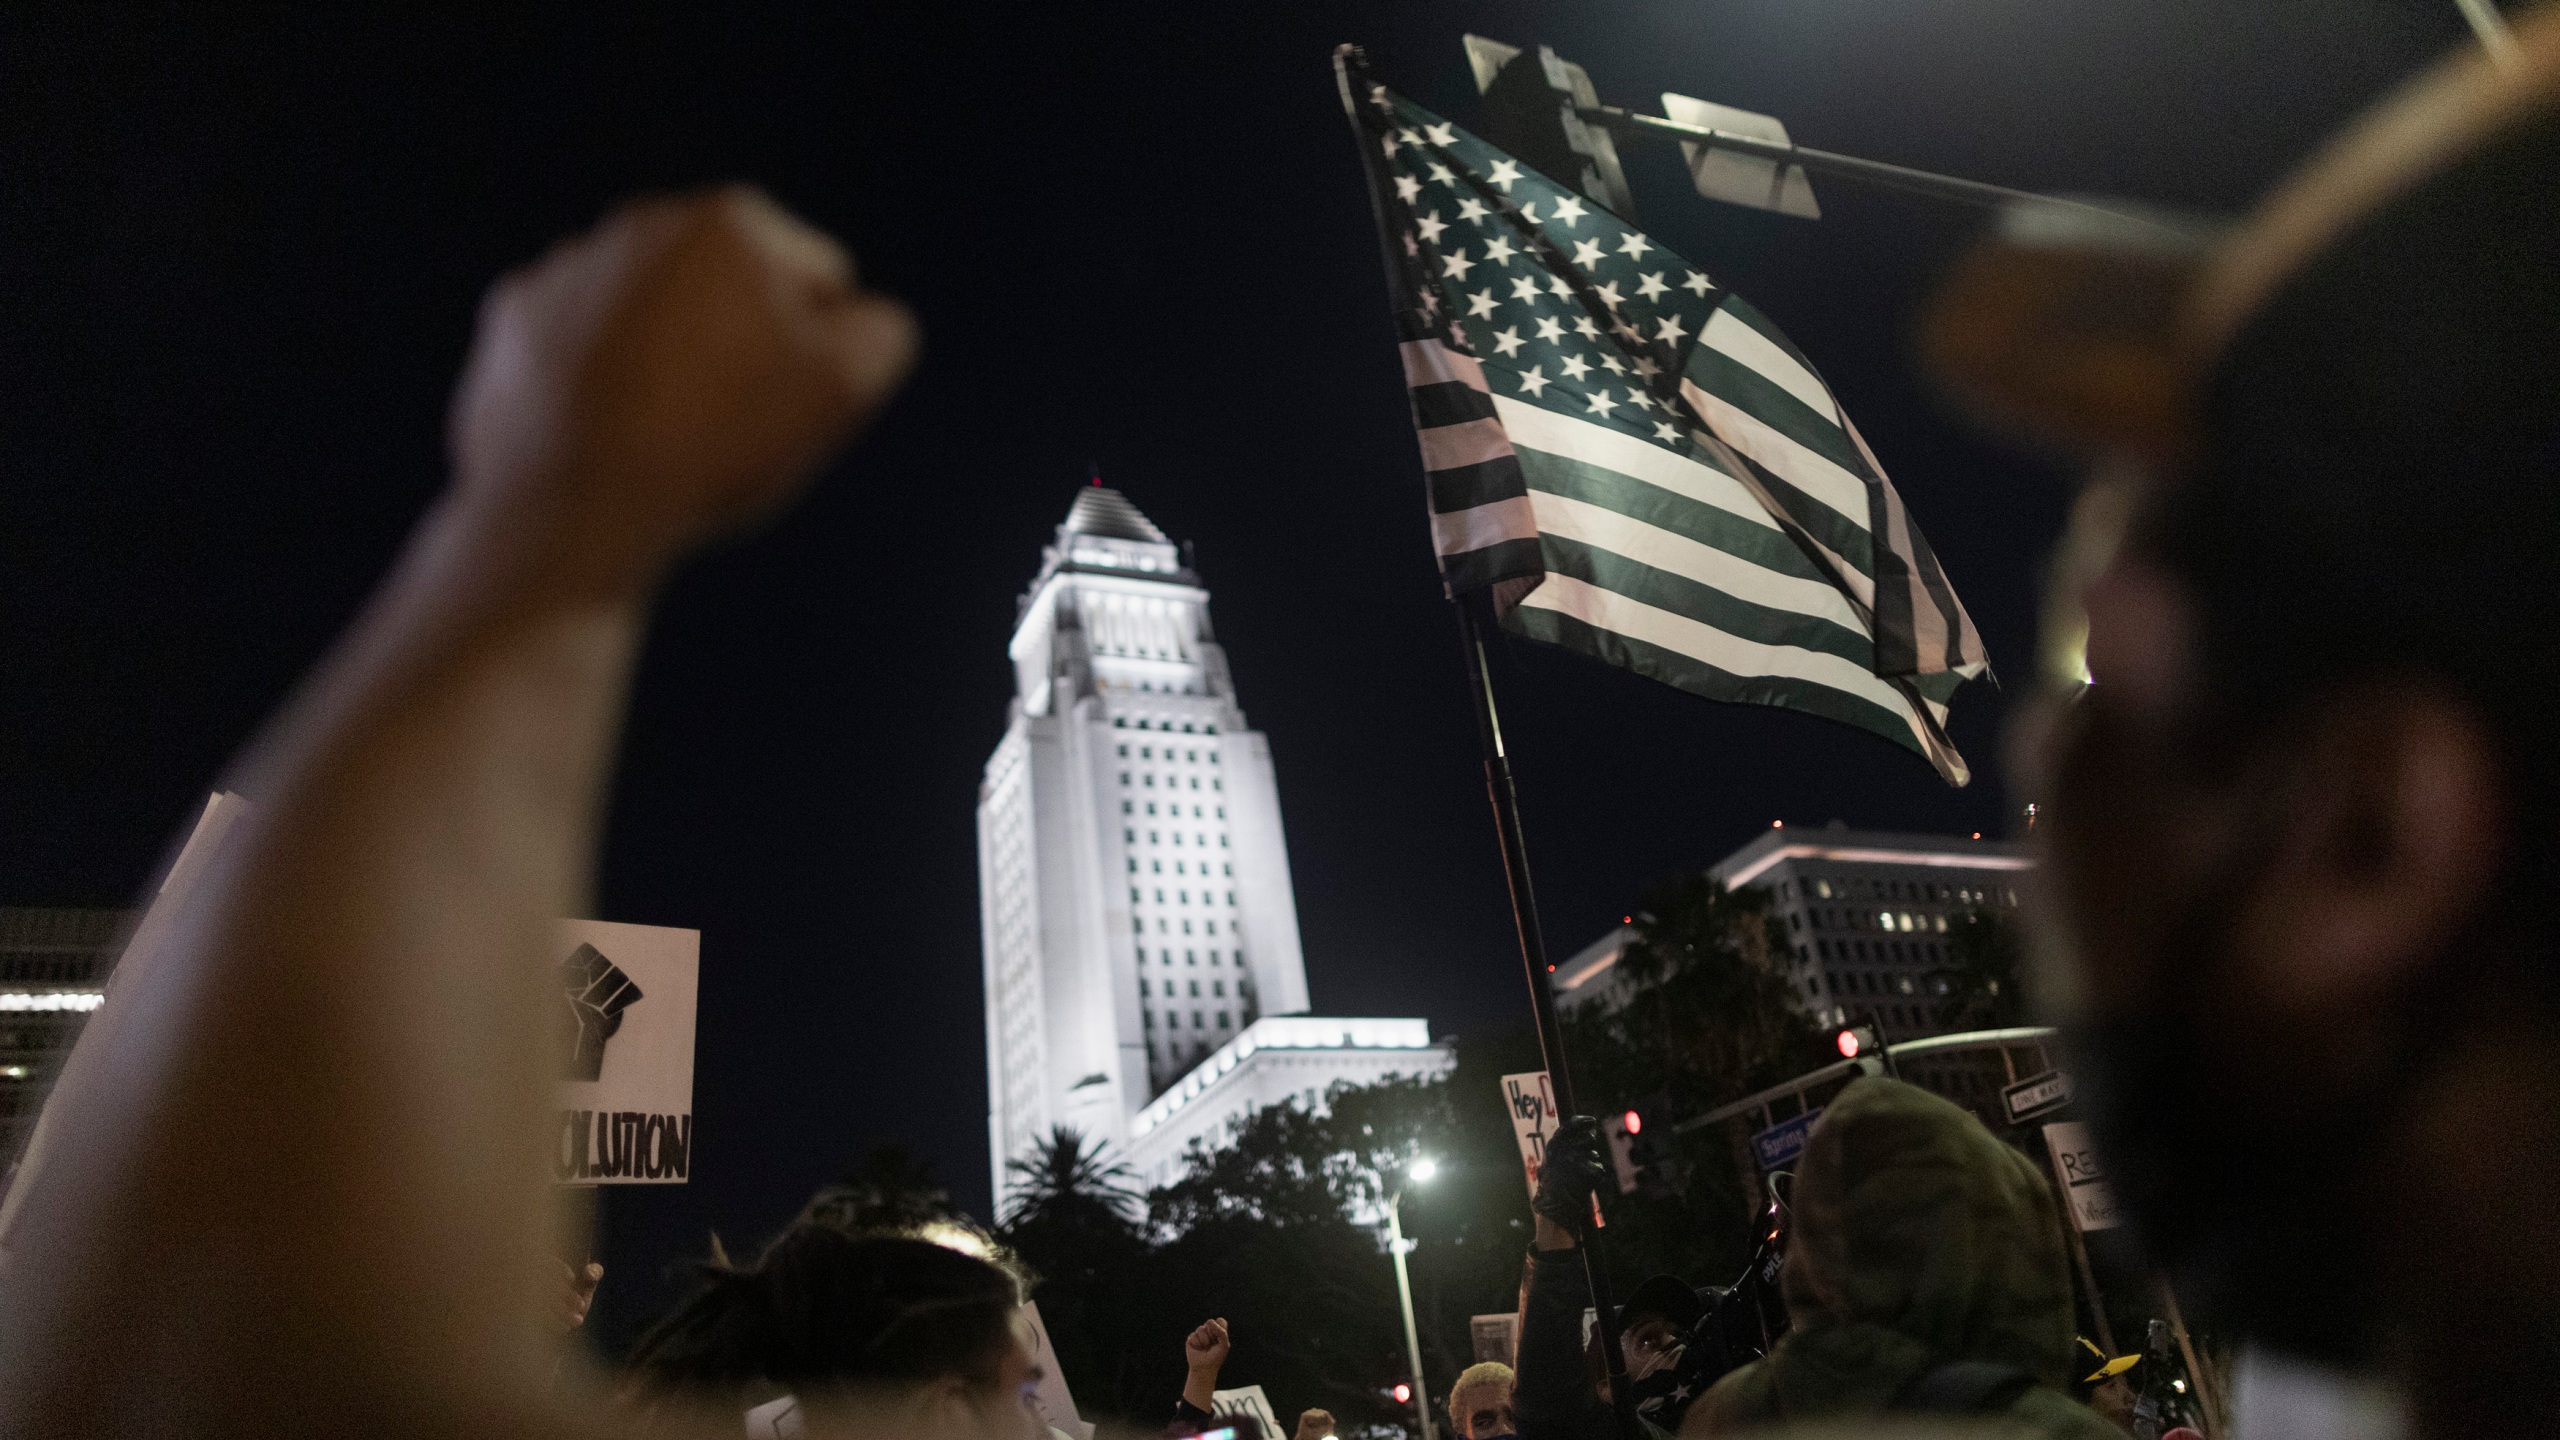 Racial justice protesters rally near Los Angeles City Hall on June 6, 2020. (David McNew / Getty Images)